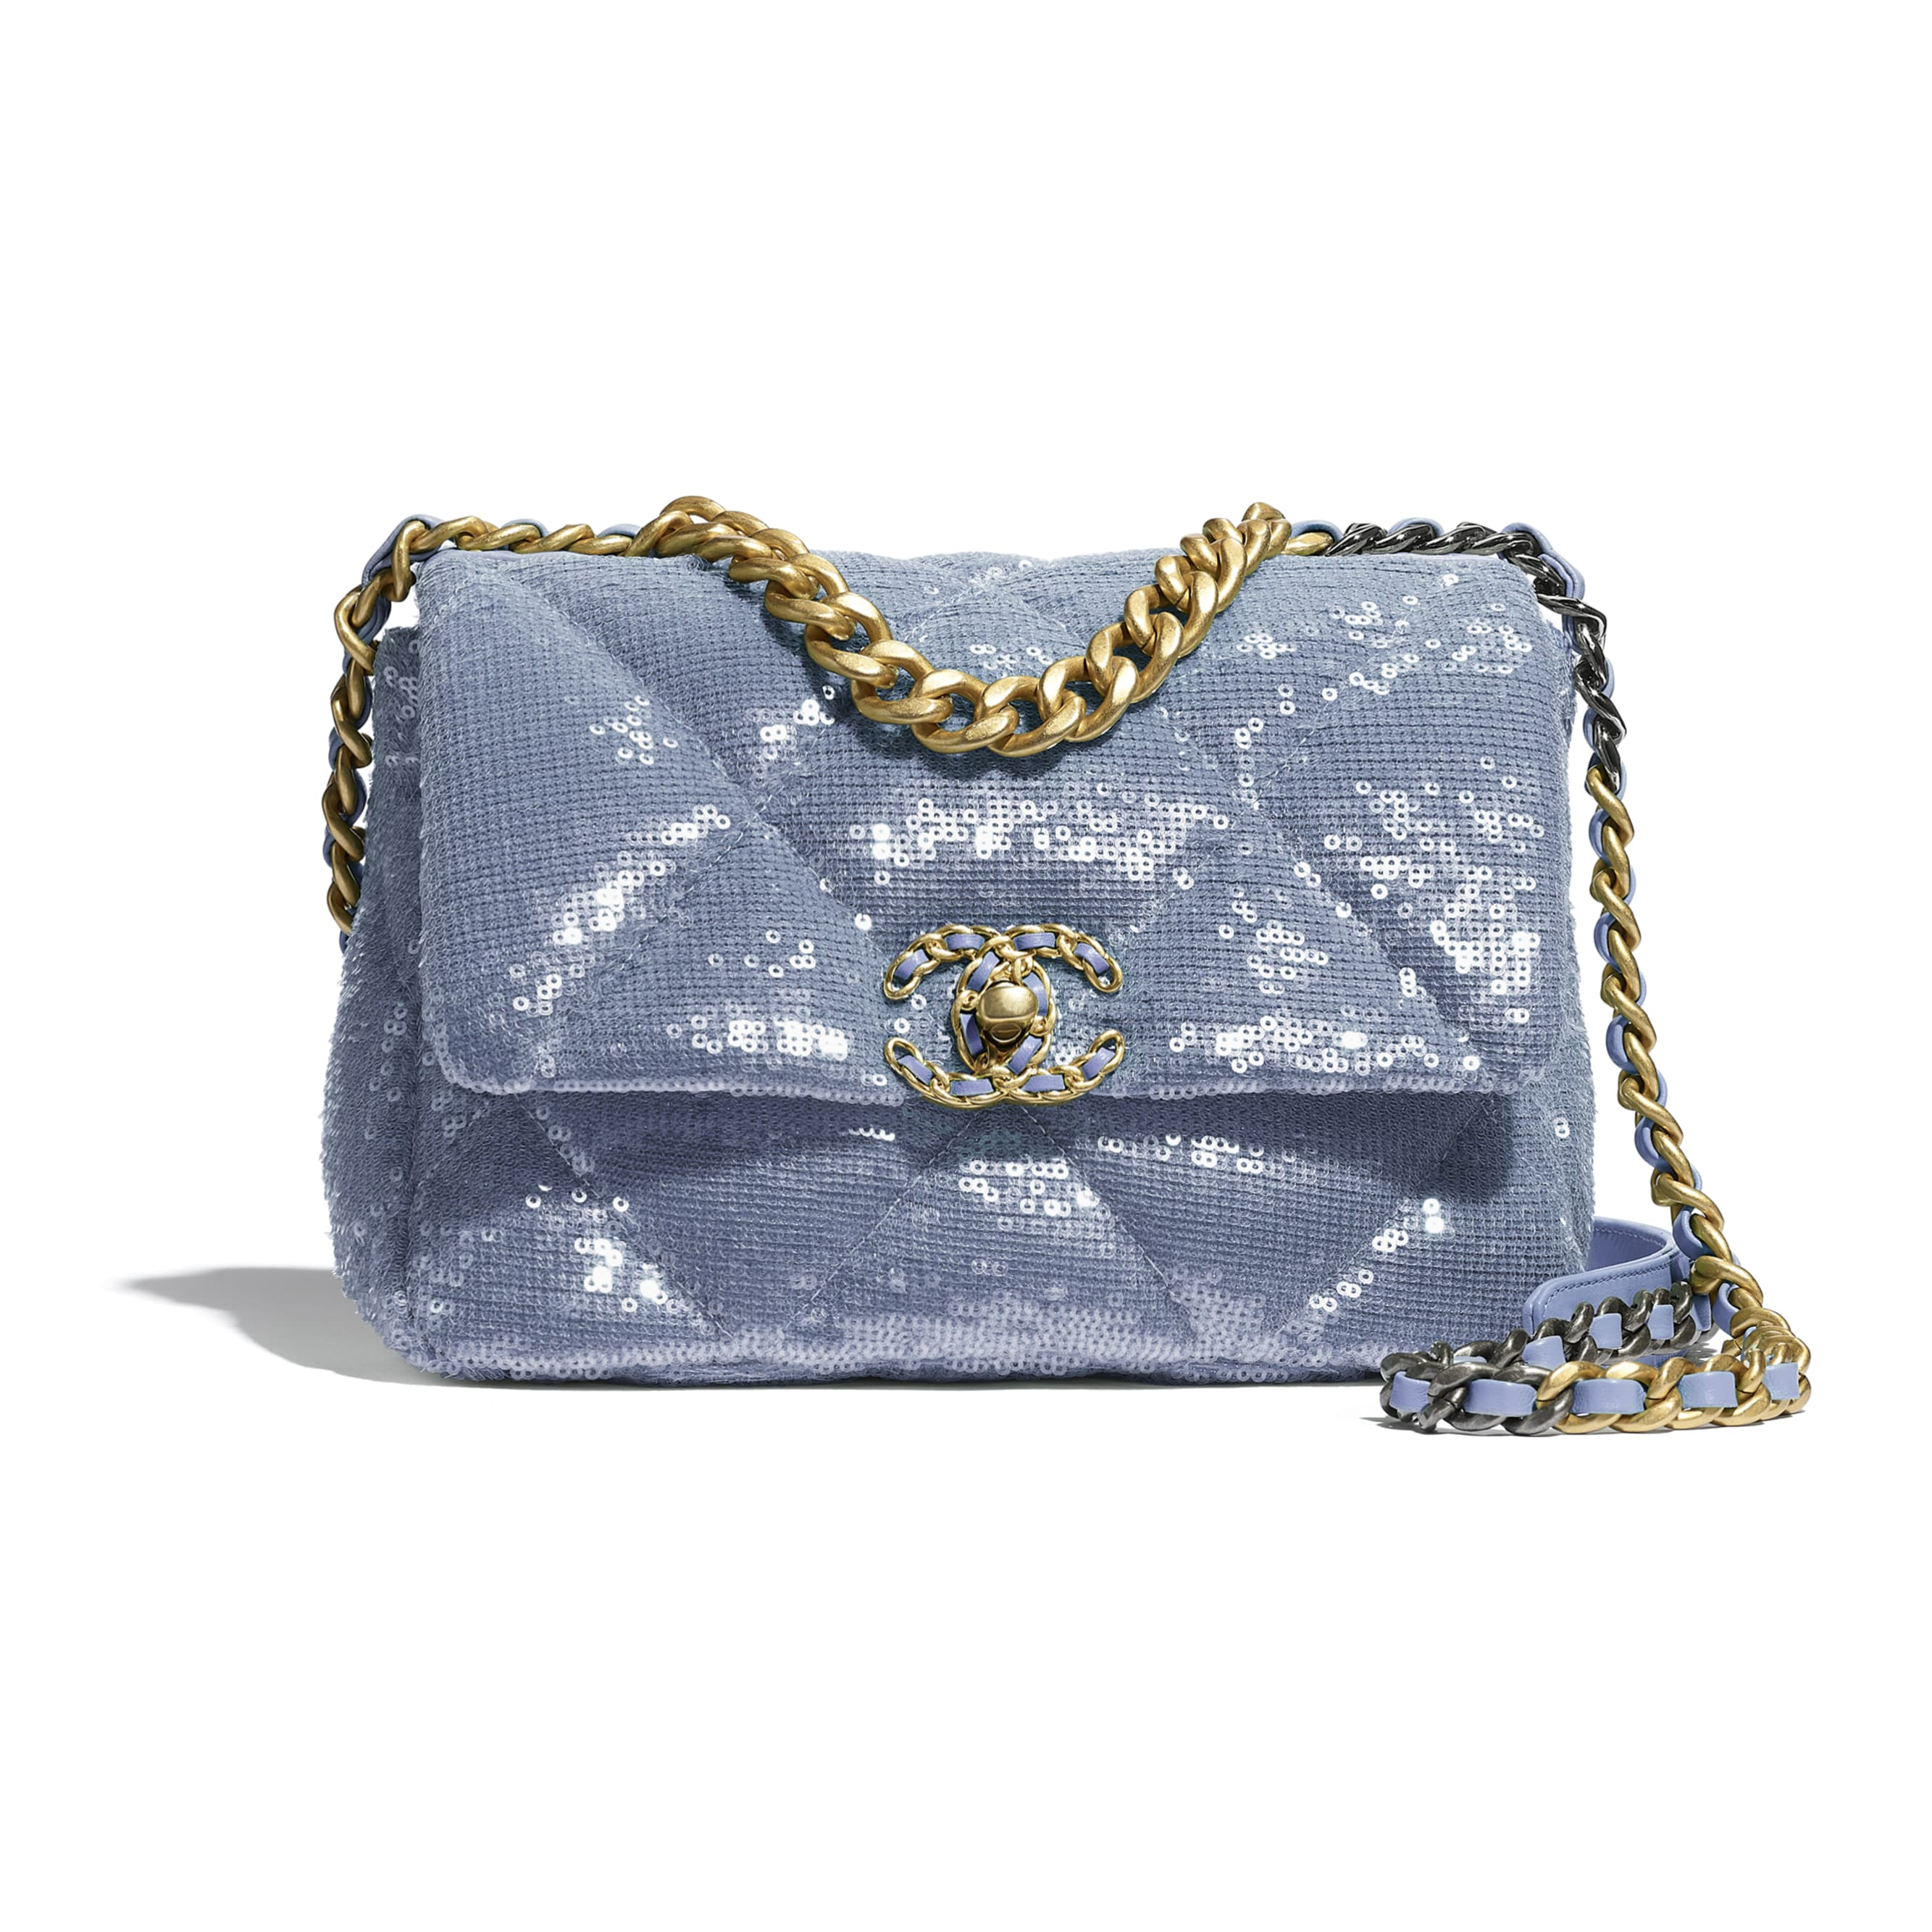 CHANEL 19 Flap Bag - Sky Blue - Sequins, calfksin, silver-tone & gold-tone metal - CHANEL - Default view - see standard sized version